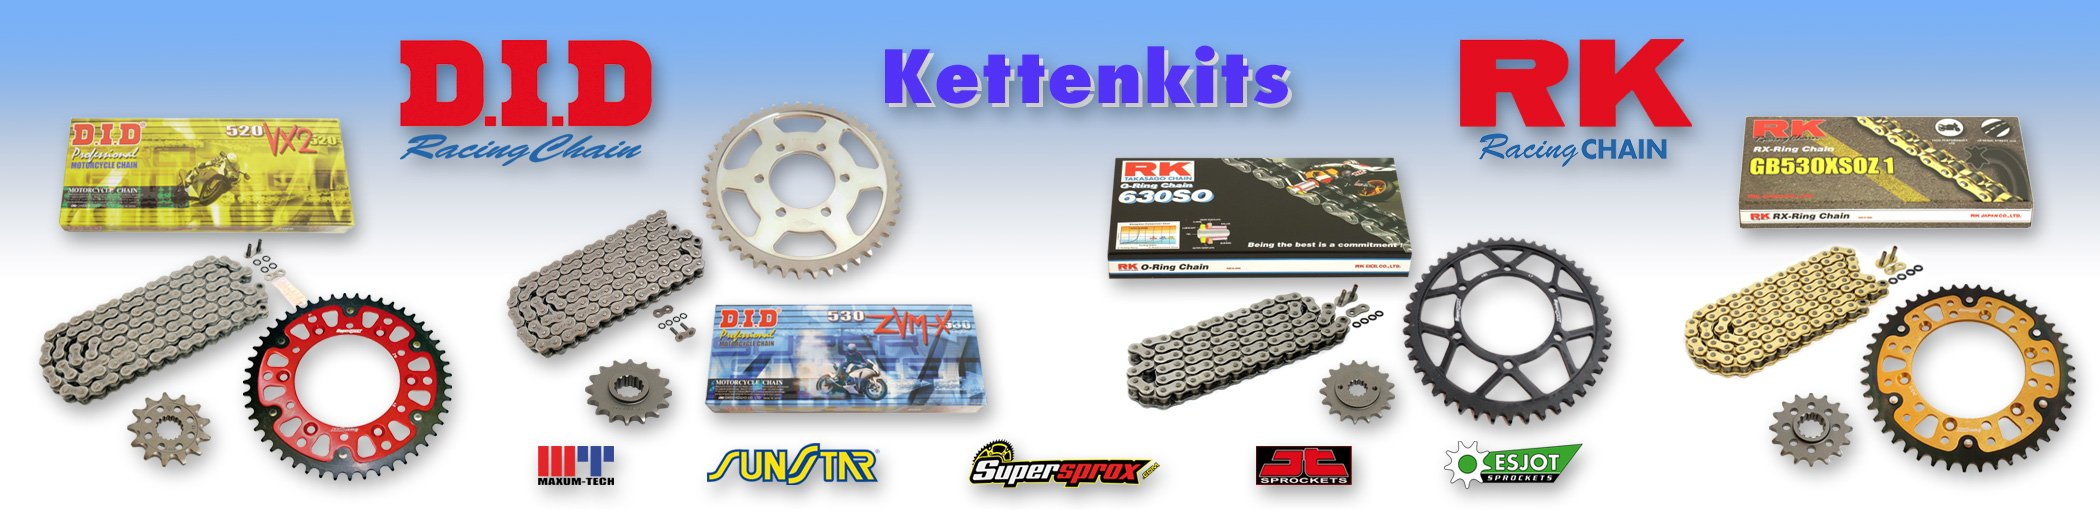 RK Racing Chain GB525XSO-114 Gold 114-Links RX-Ring Chain with Connecting Link